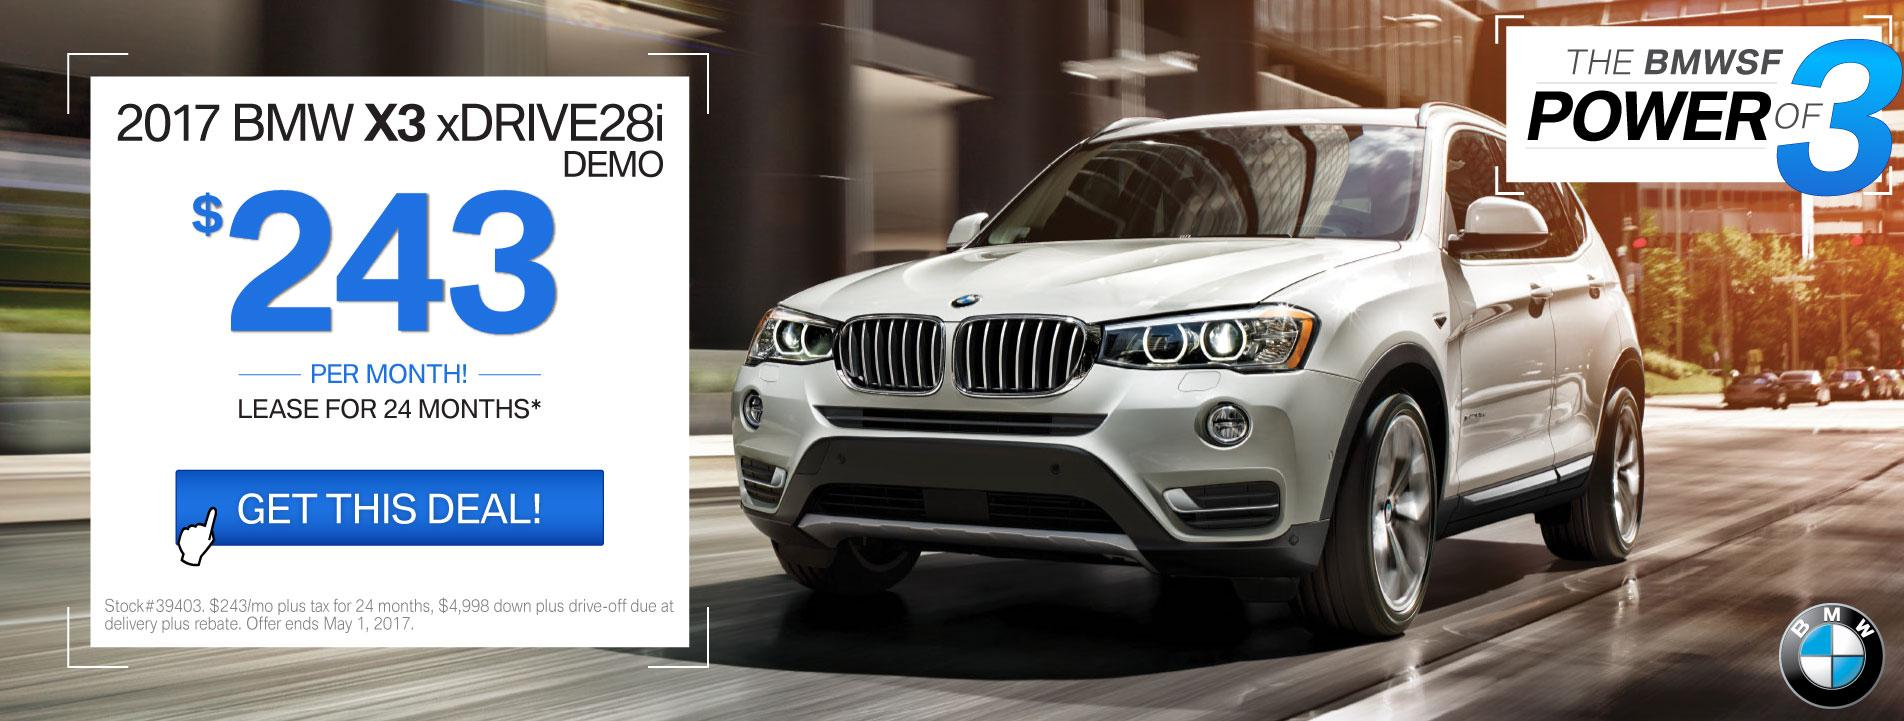 BMWSF X3 Offer